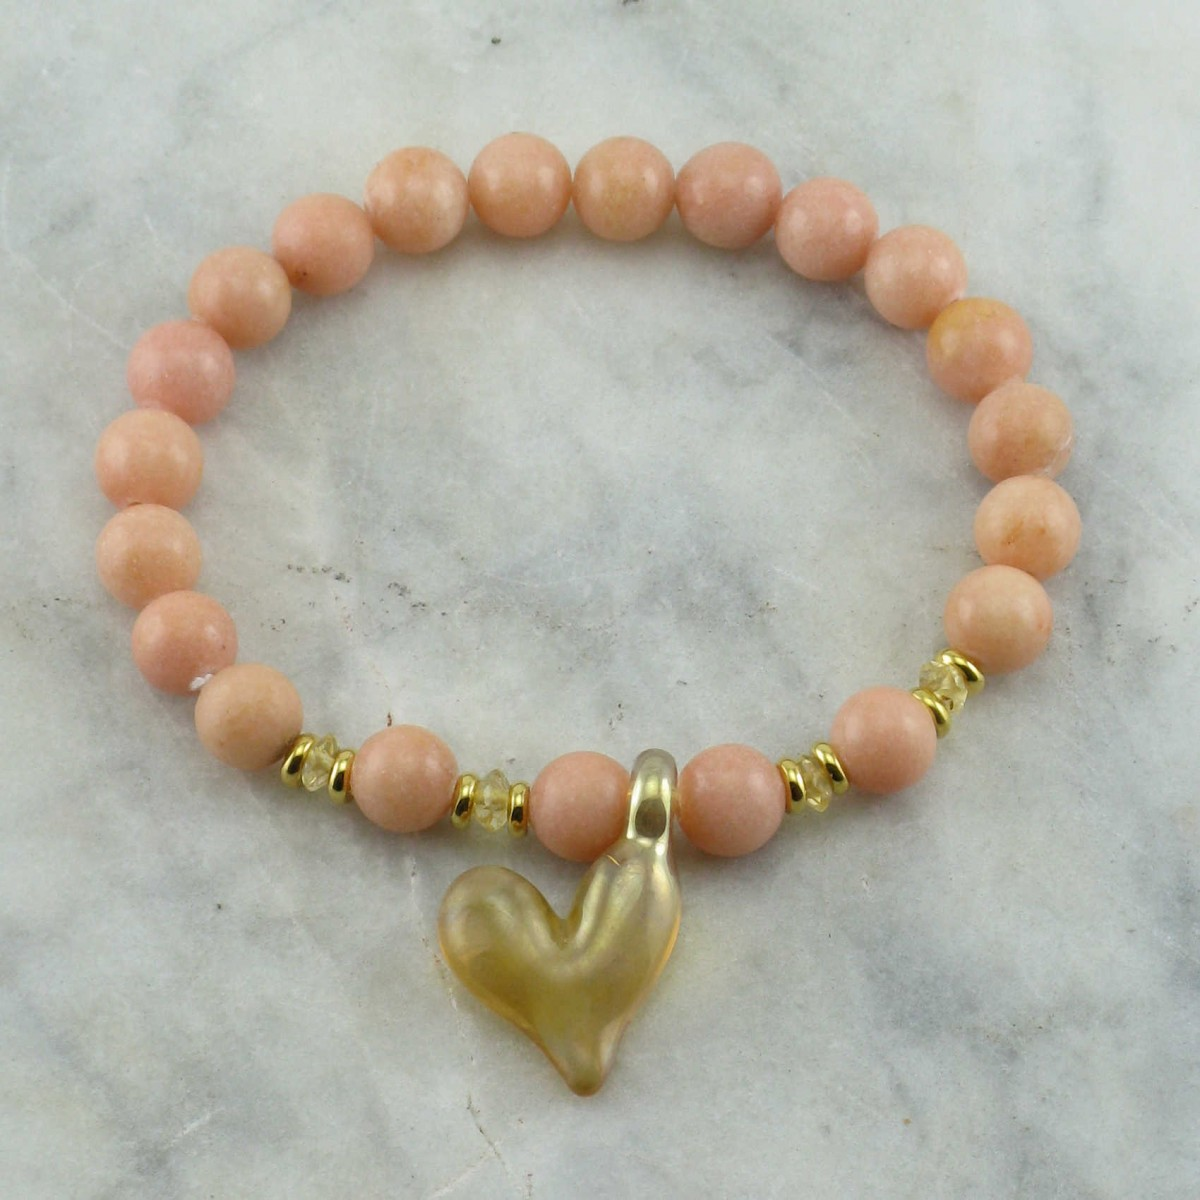 Heart_Of_Gold_Mala_Bead_Bracelet_21_Tangerine_Quartz_Mala_Beads_Buddhist_Prayer_Beads_Wrist